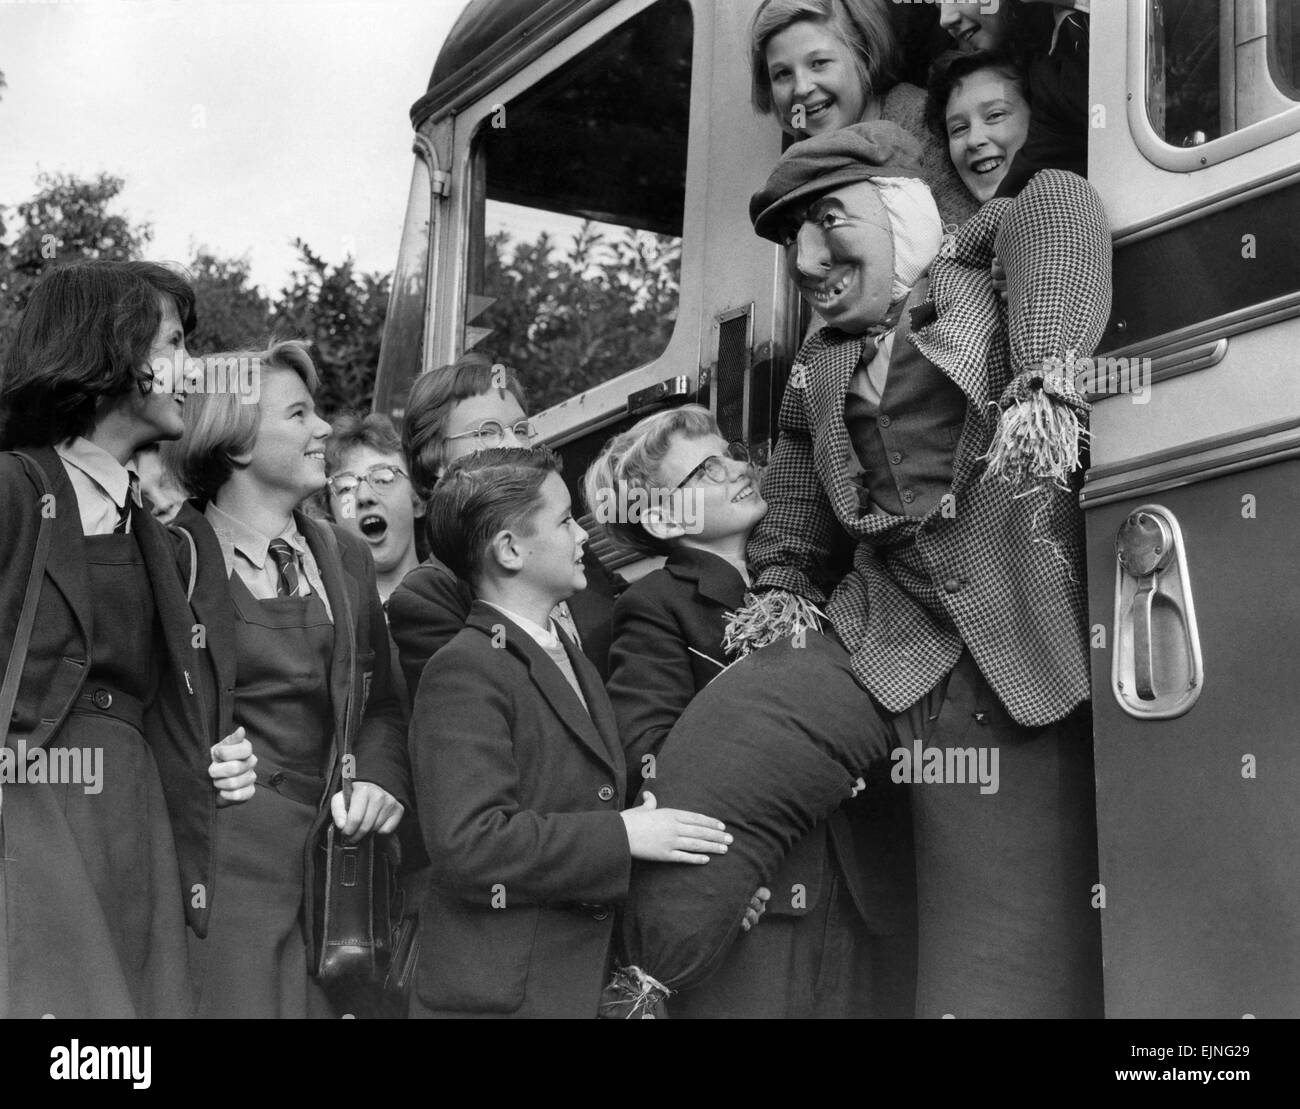 He's a lucky Guy, travelling by school bus. But these children of Wick Hill Secondary Modern School, Bracknell, Stock Photo